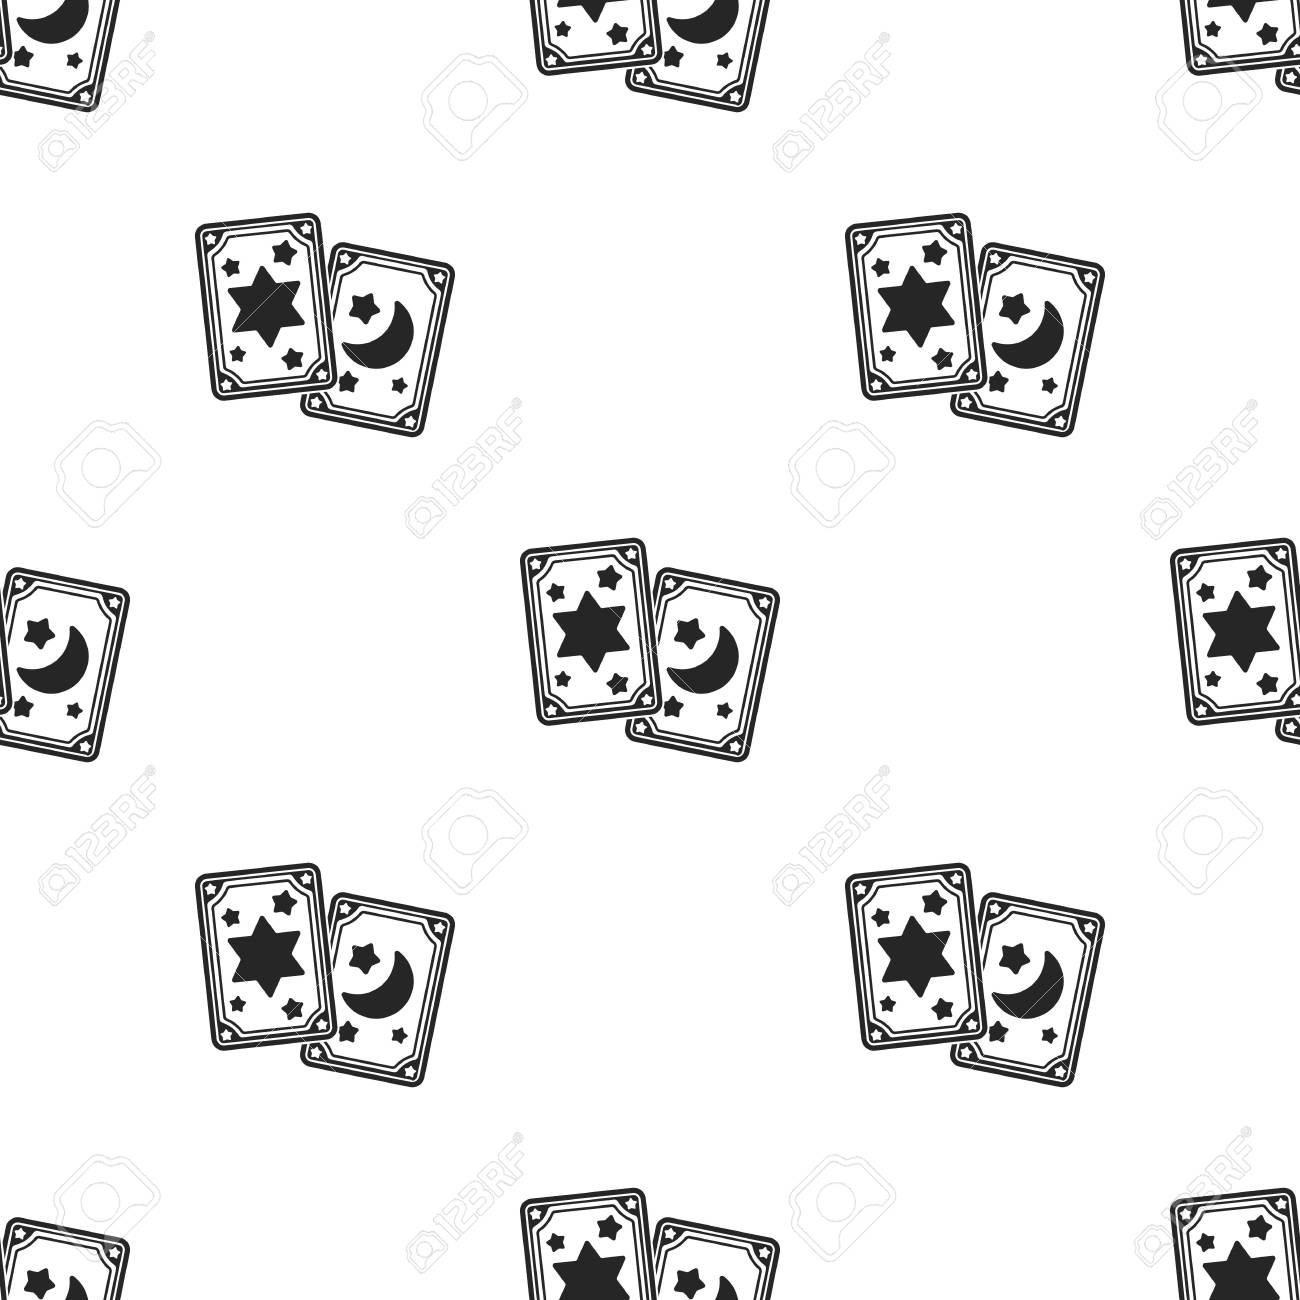 Tarot cards icon in black style isolated on white background